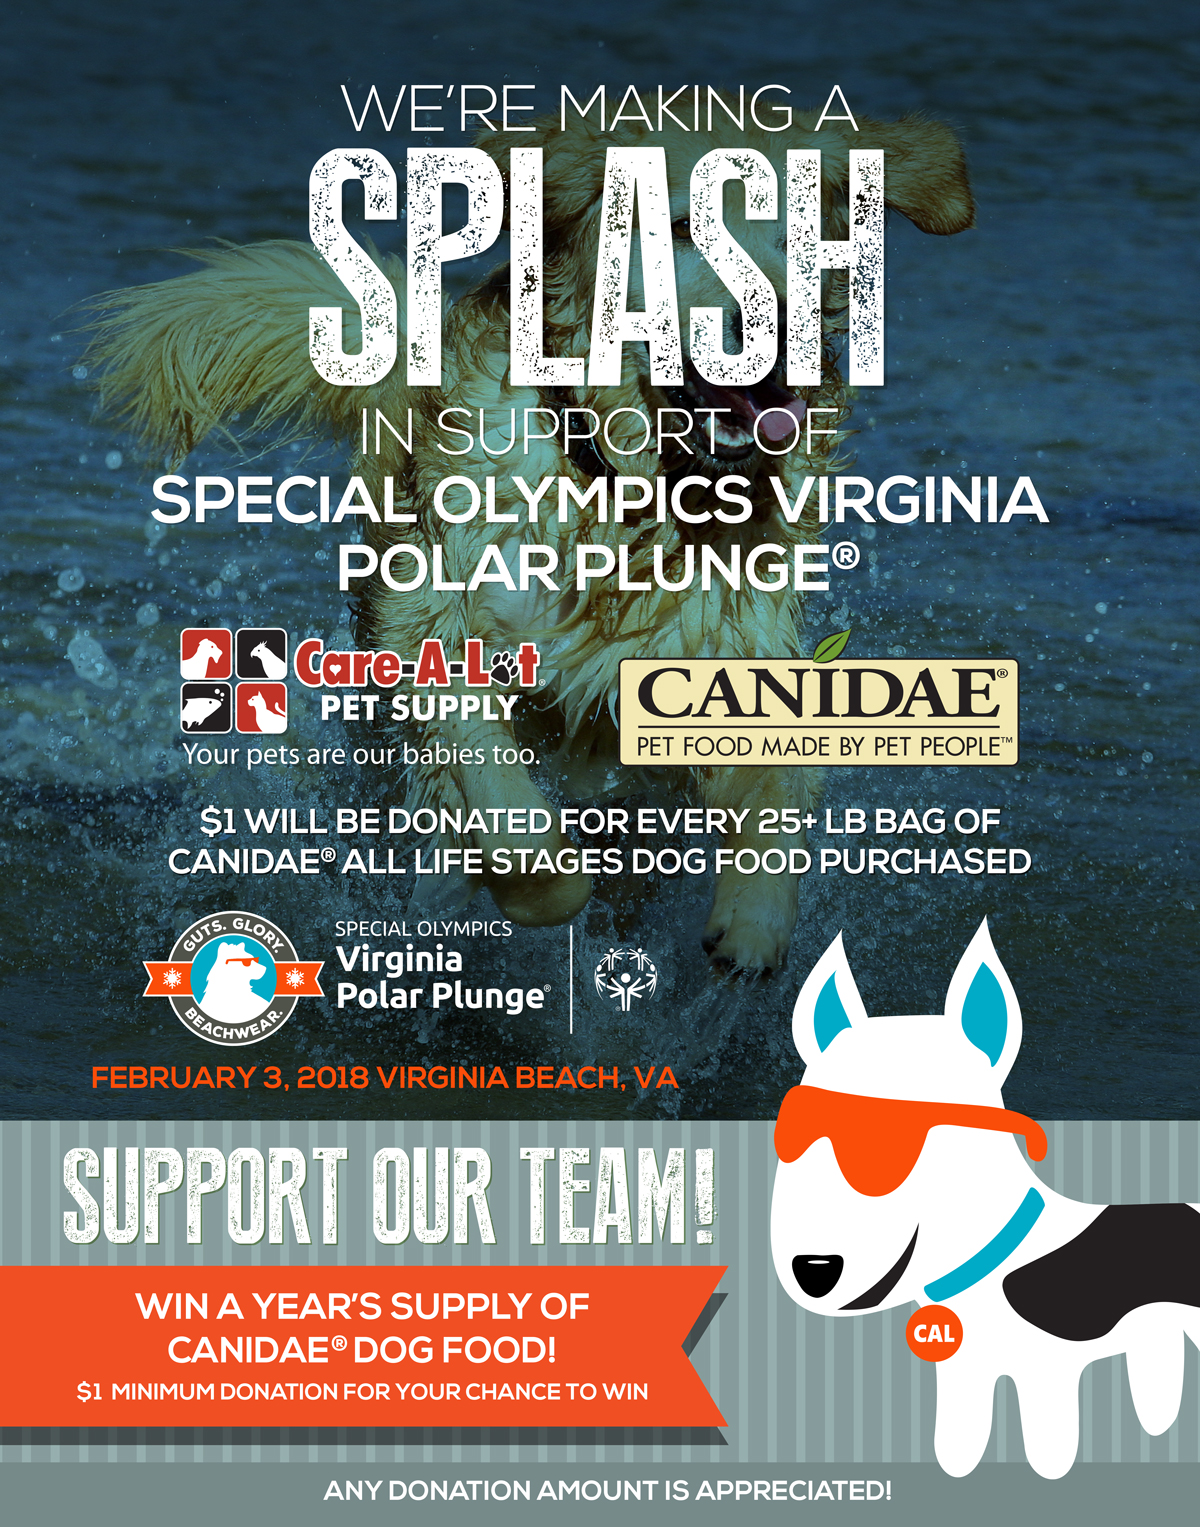 Care-a-lot and the Polar Plunge